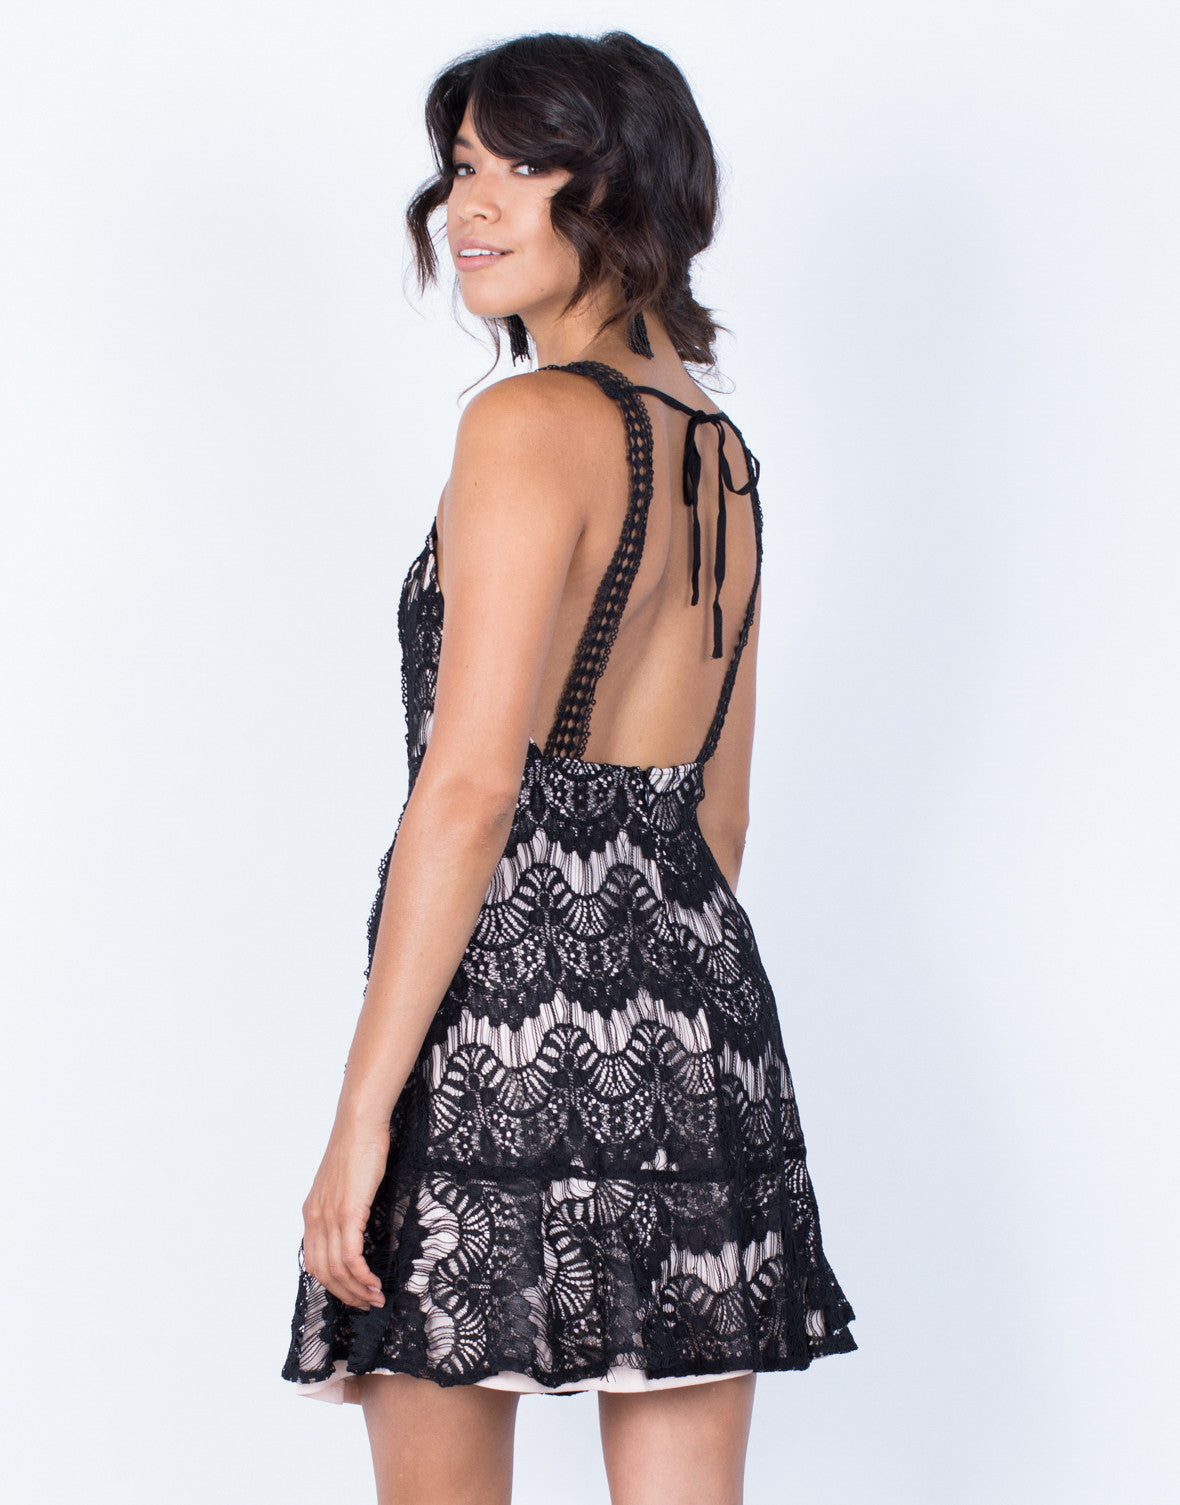 Back View of After Hours Cocktail Dress